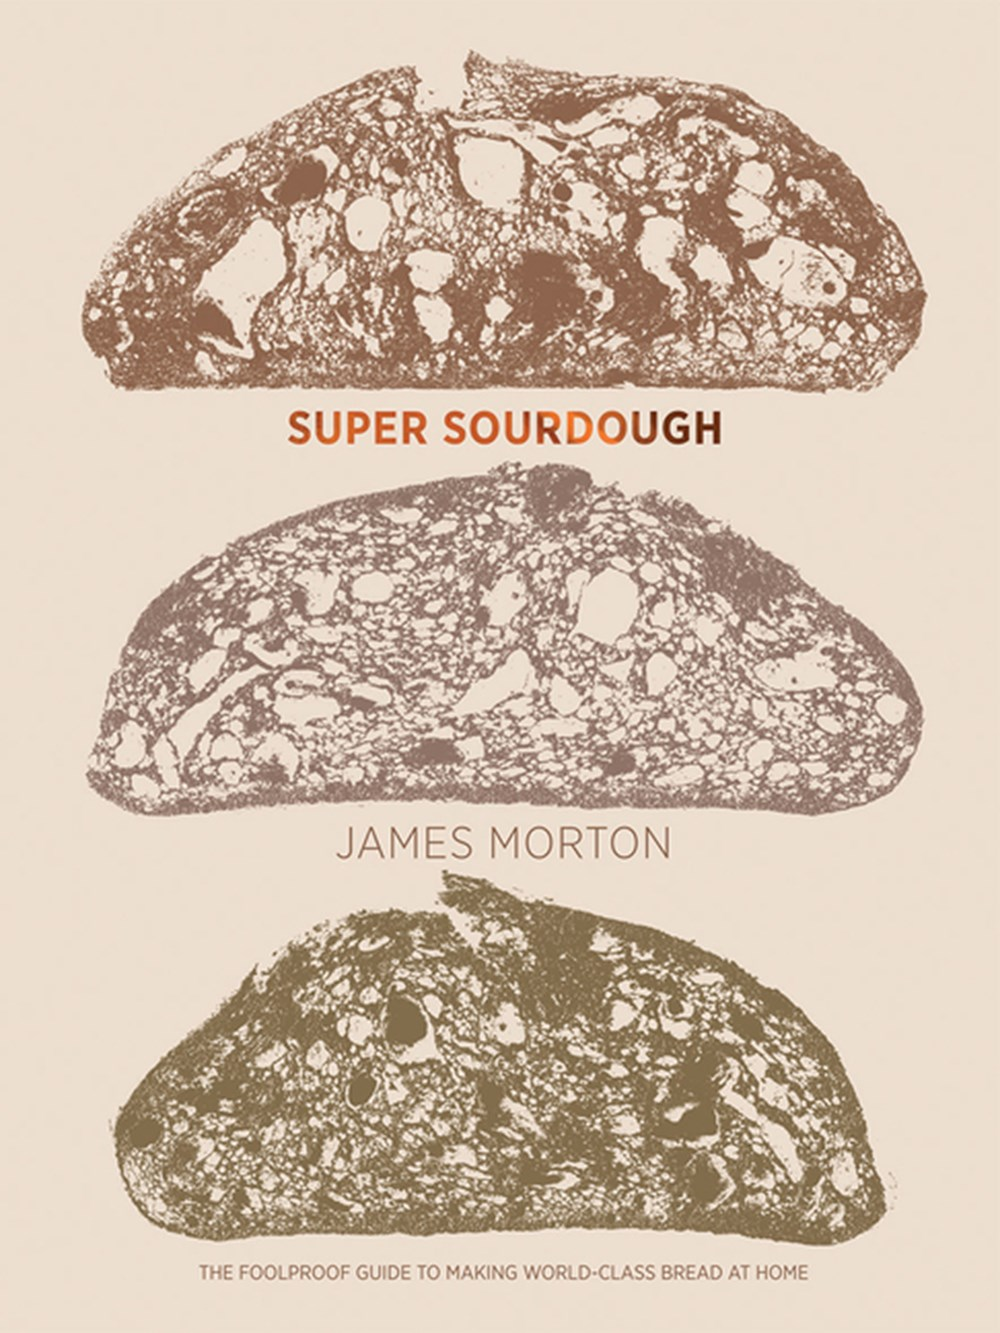 Super Sourdough The Foolproof Guide to Making World-Class Bread at Home